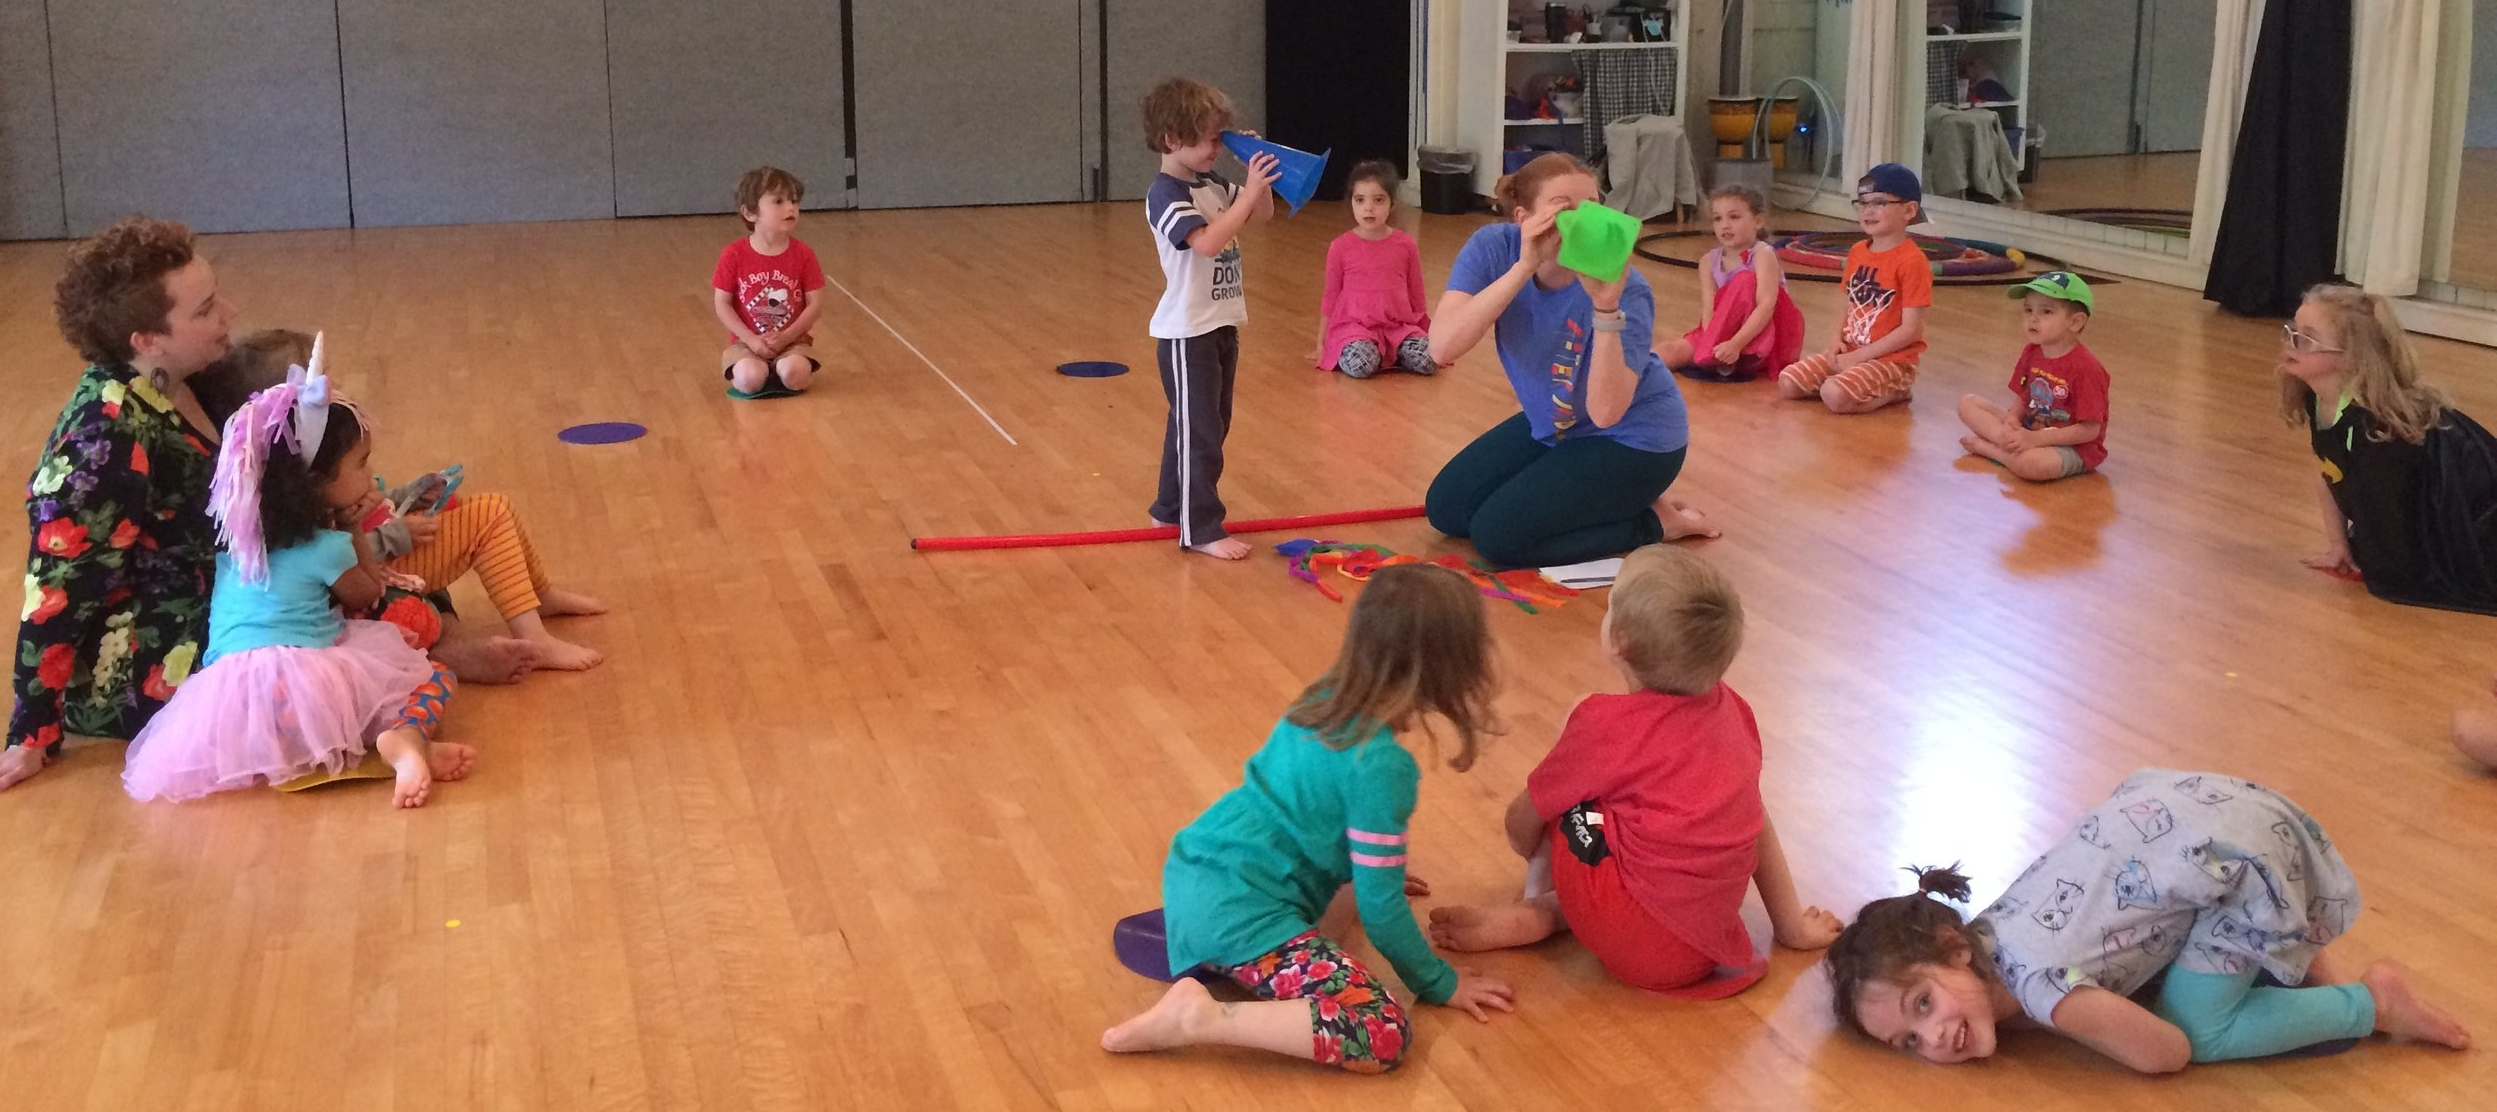 KATIE INSTRUCTING OUR MULTI-ARTS MORNINGS CLASS FOR CHILDREN AGES 3-5. IN THE VIDEO BELOW, SHE LEADS THEM IN A FUN MOVEMENT EXERCISE.